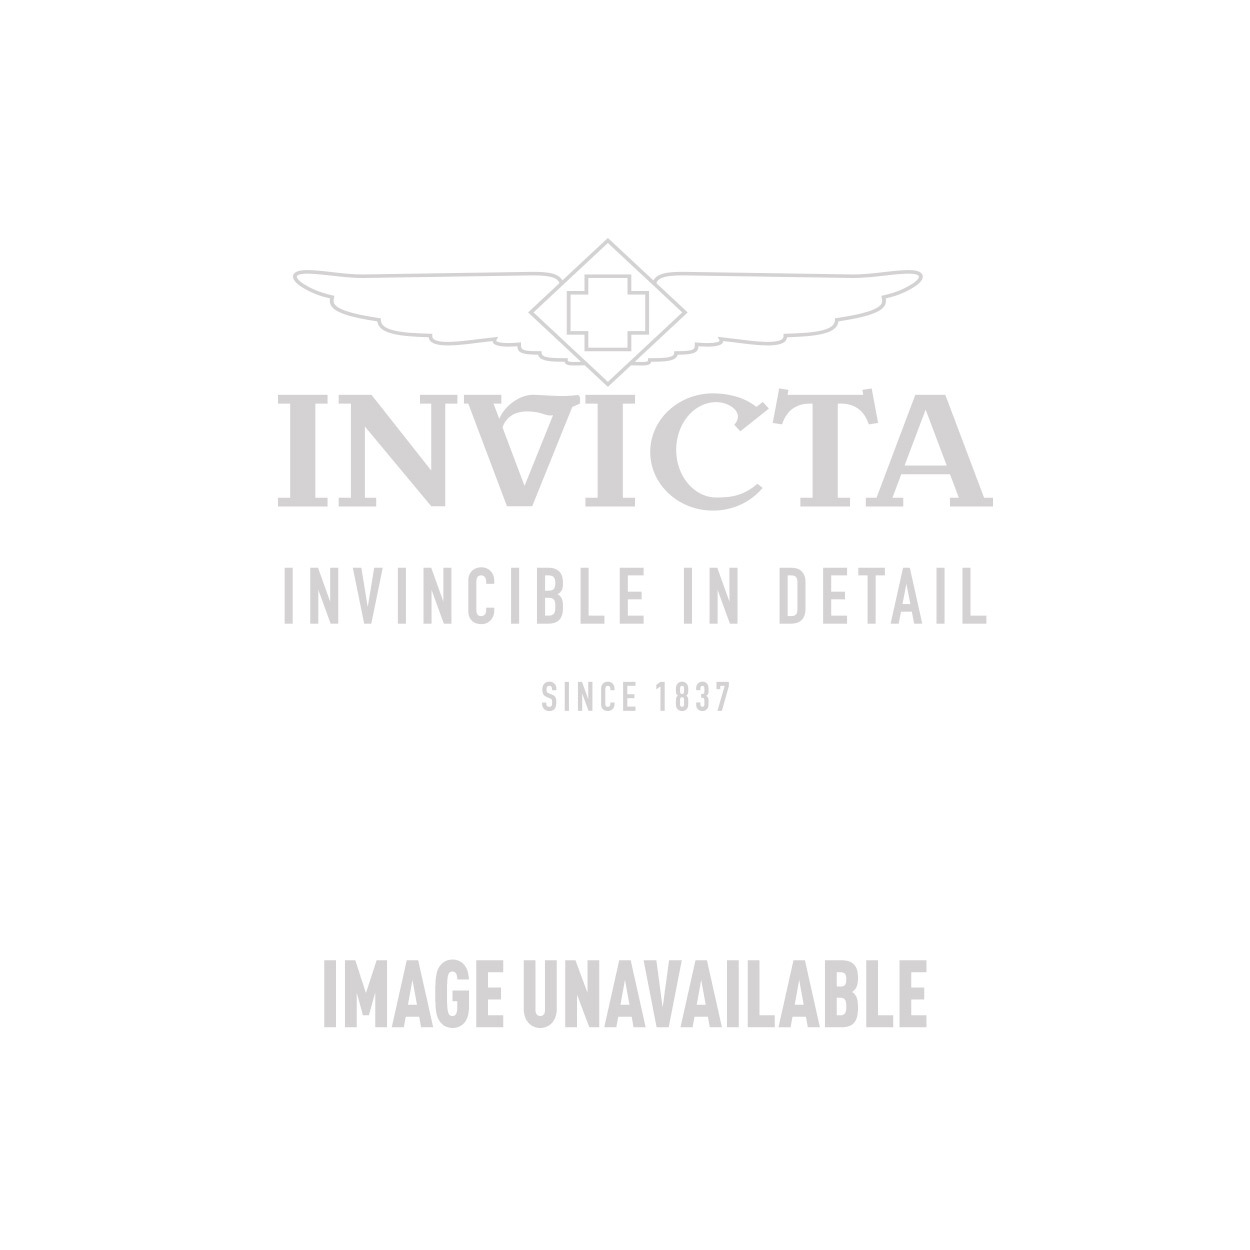 Invicta Angel Womens Swiss Movement Quartz Watch - Gold case with Gold tone Stainless Steel band - Model 17494